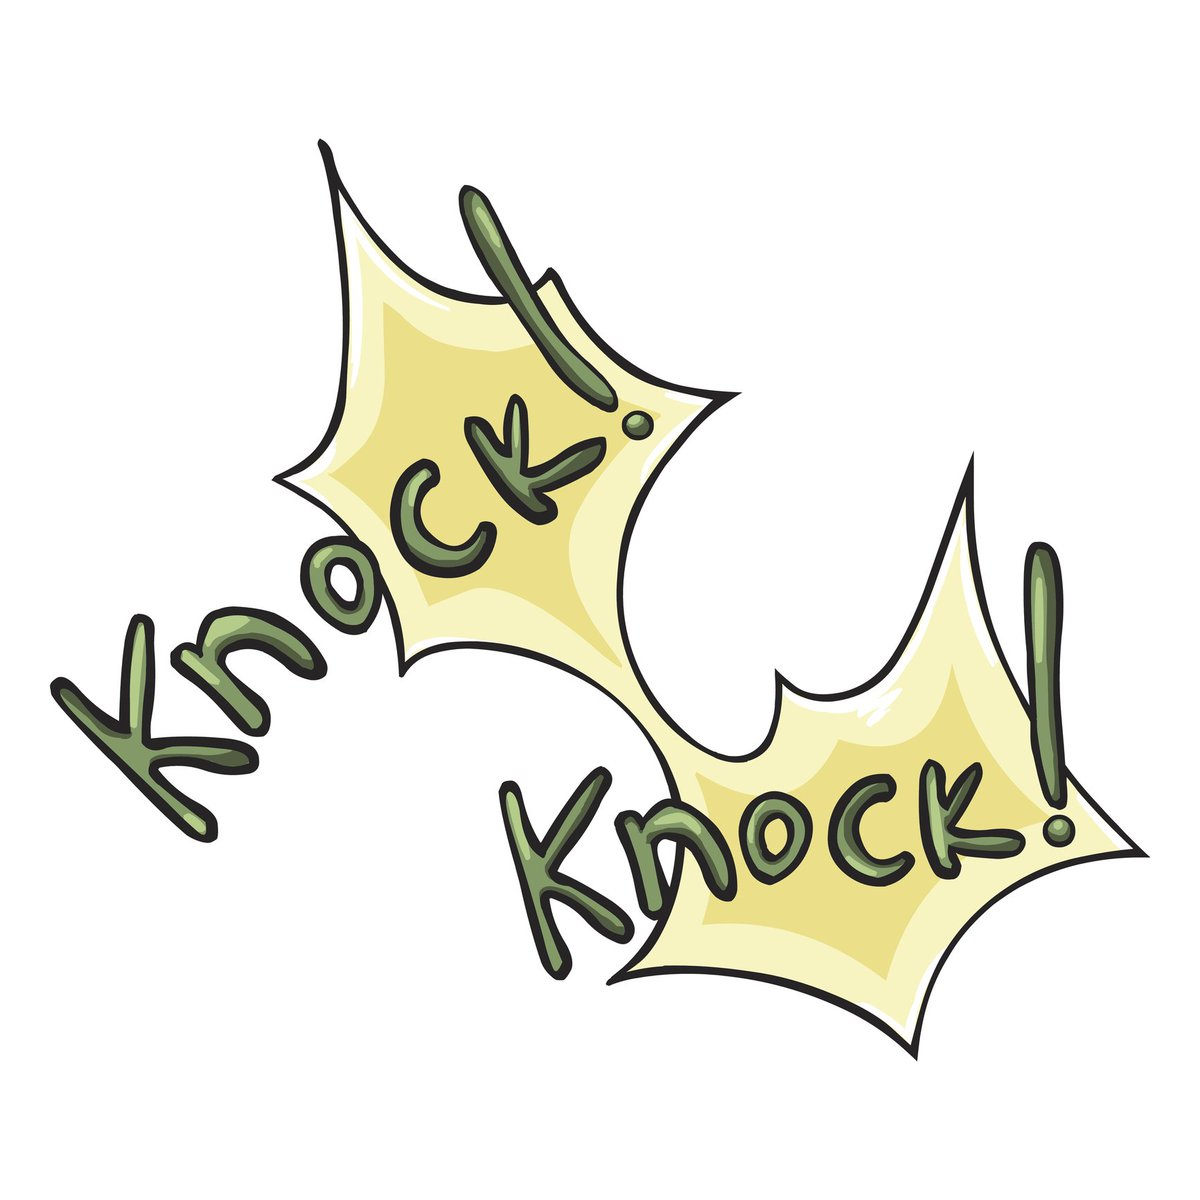 Perfect #funnyoftheday   Knock, Knock. Whou0027s There? Avenue. Avenue Who? Avenue  Knocked On This Door Before?pic.twitter.com/g7mcQWHEQ4